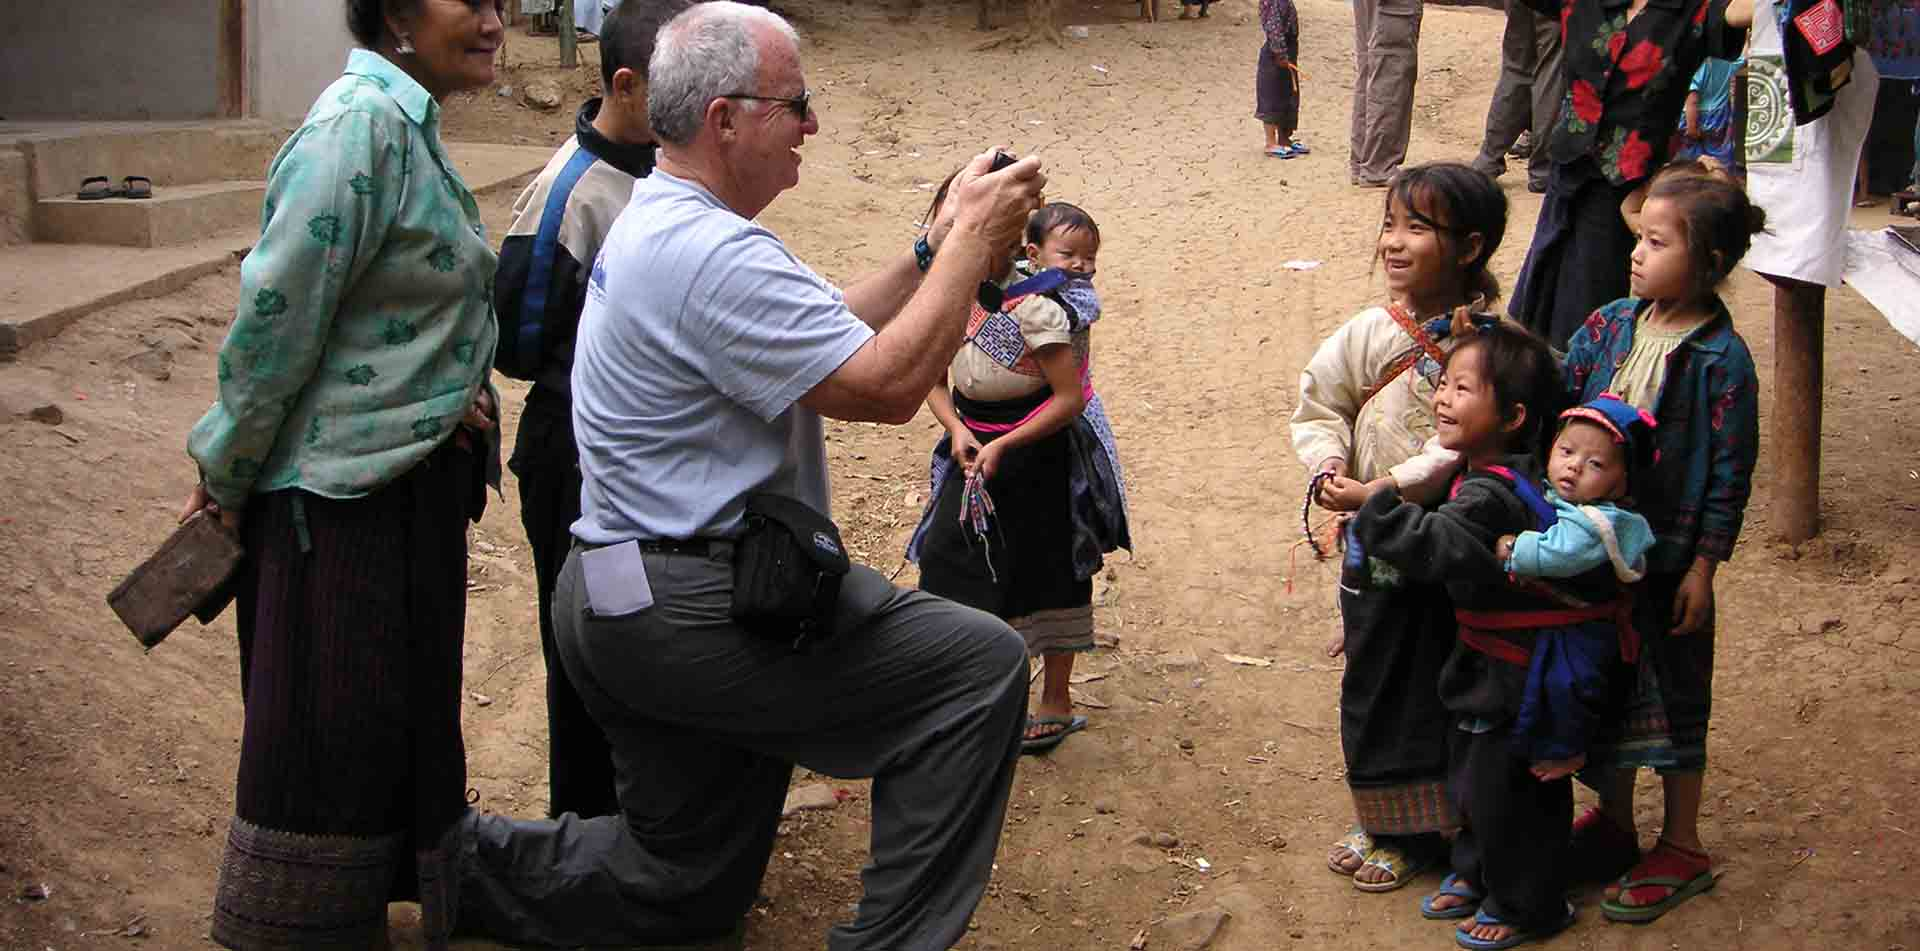 Tourist with Village Children, Vietnam